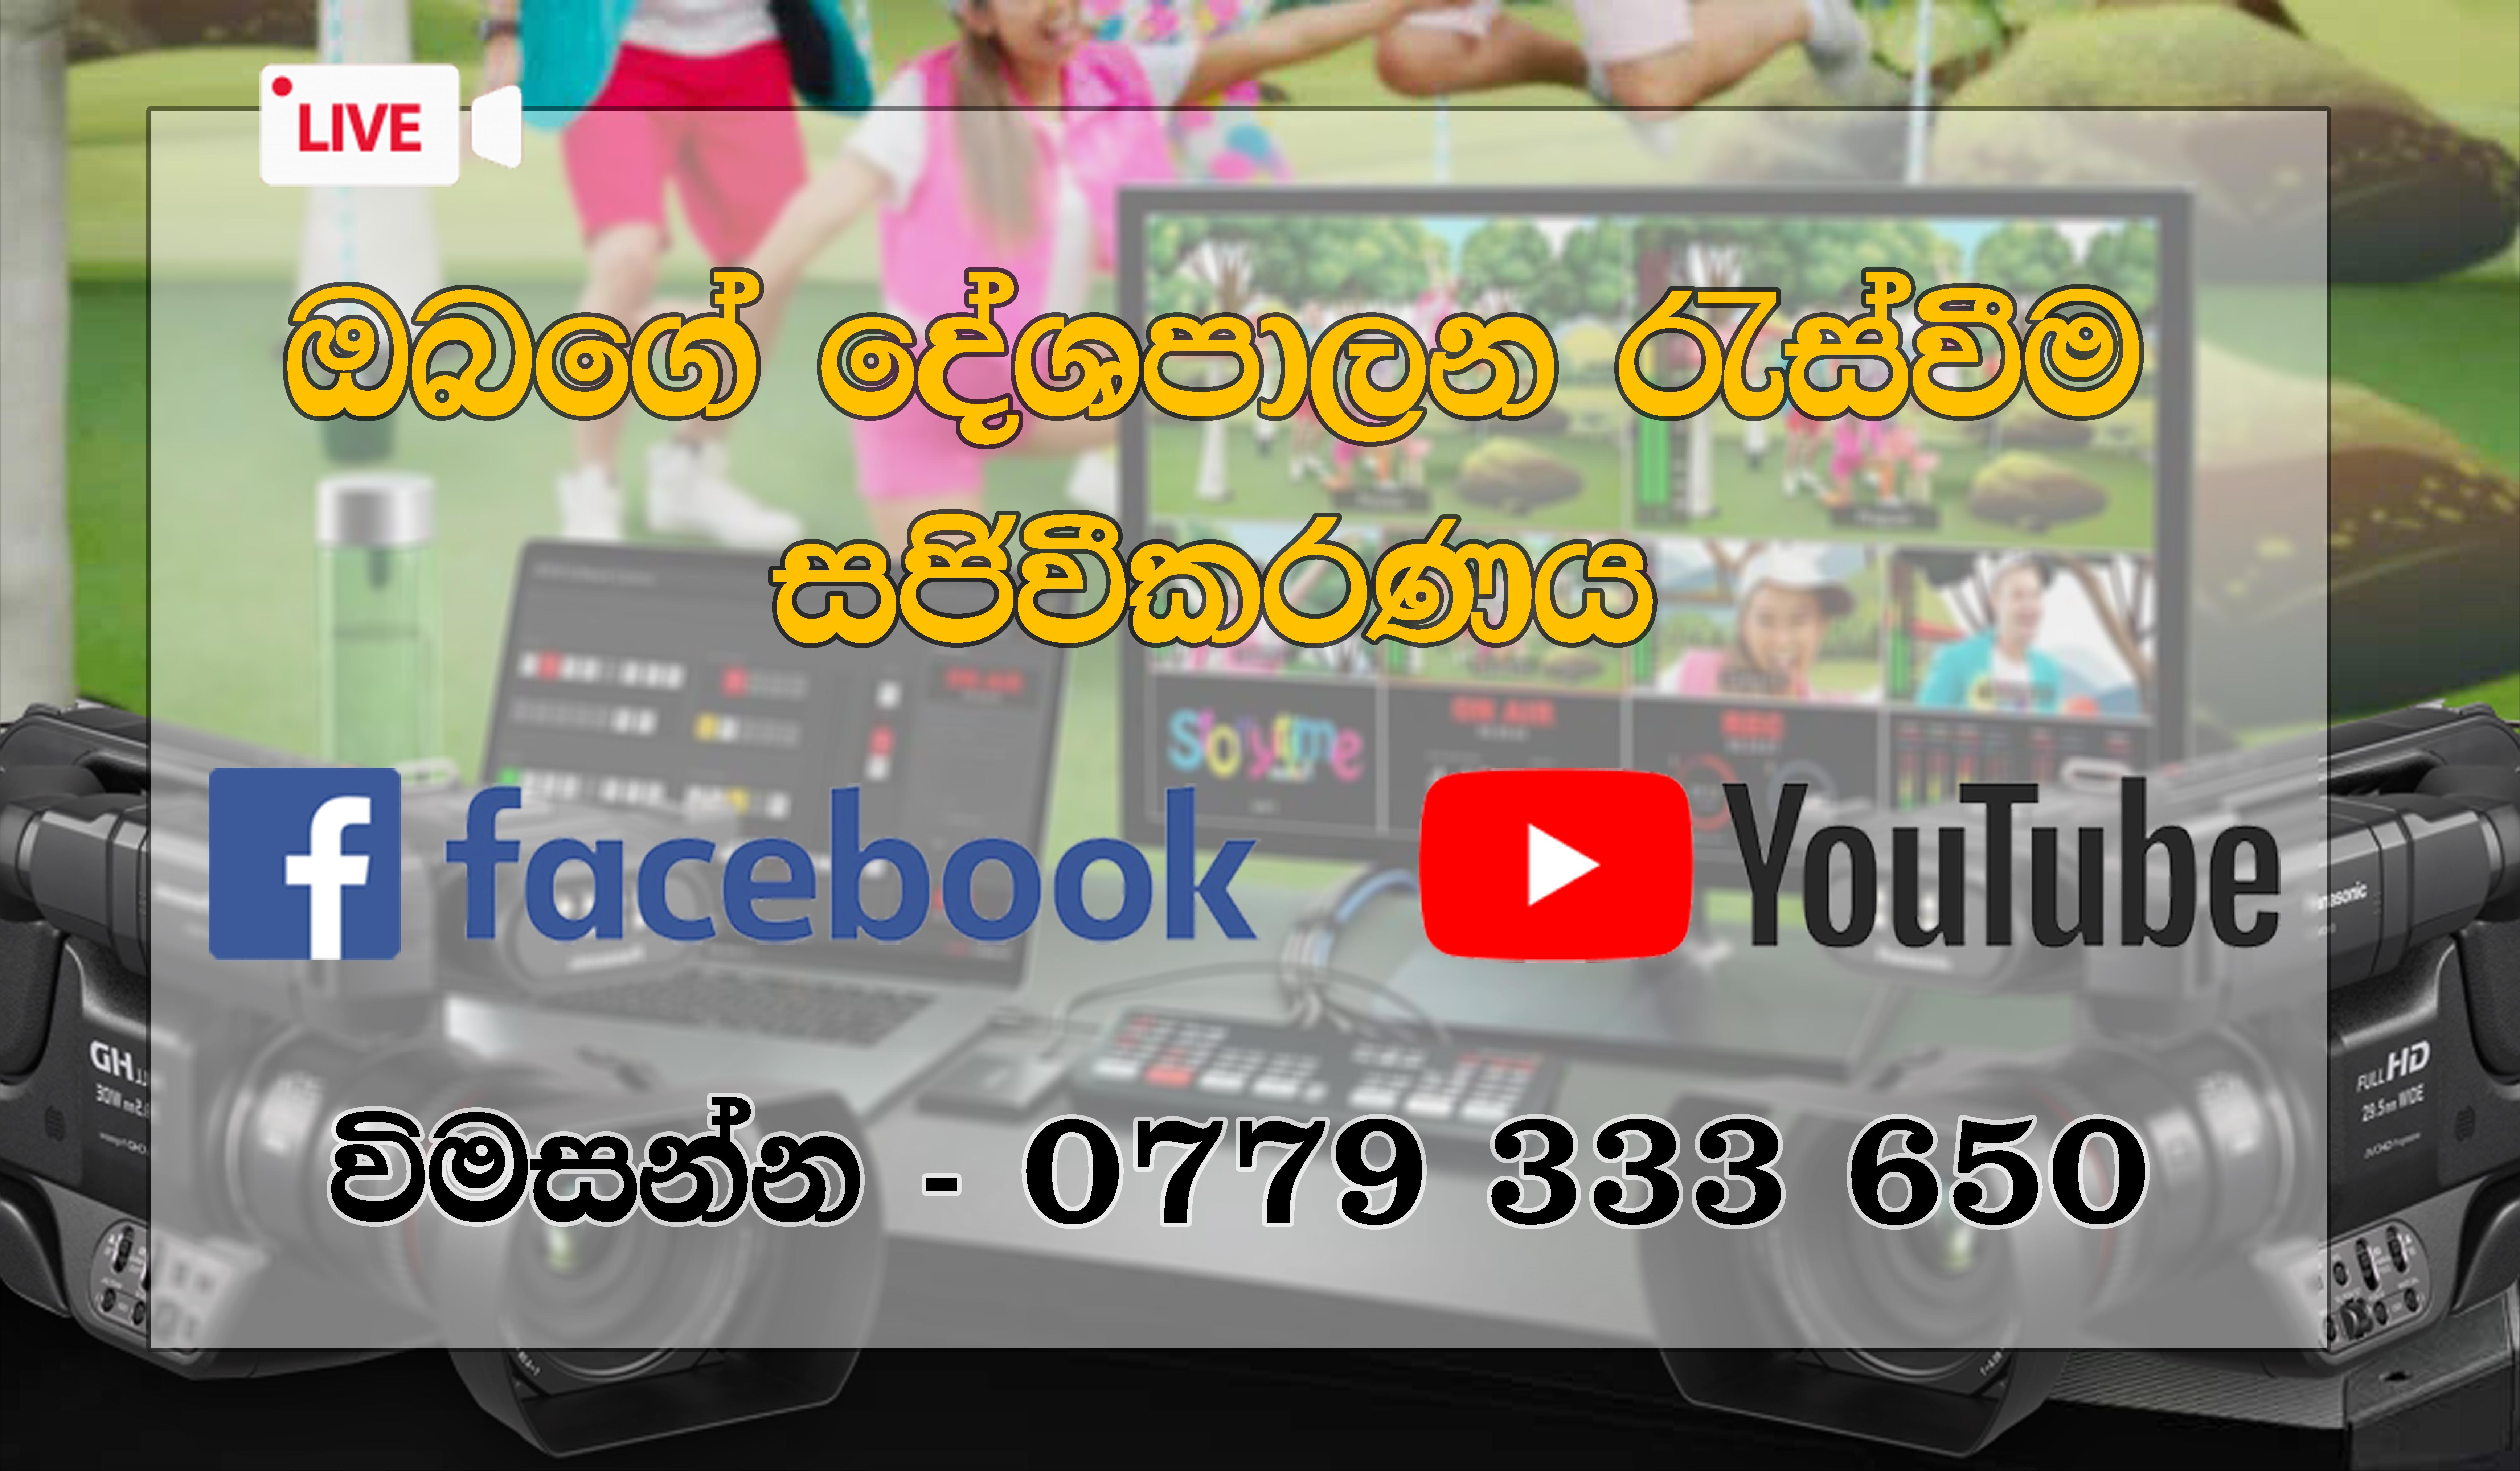 Live Video Broadcasting Services